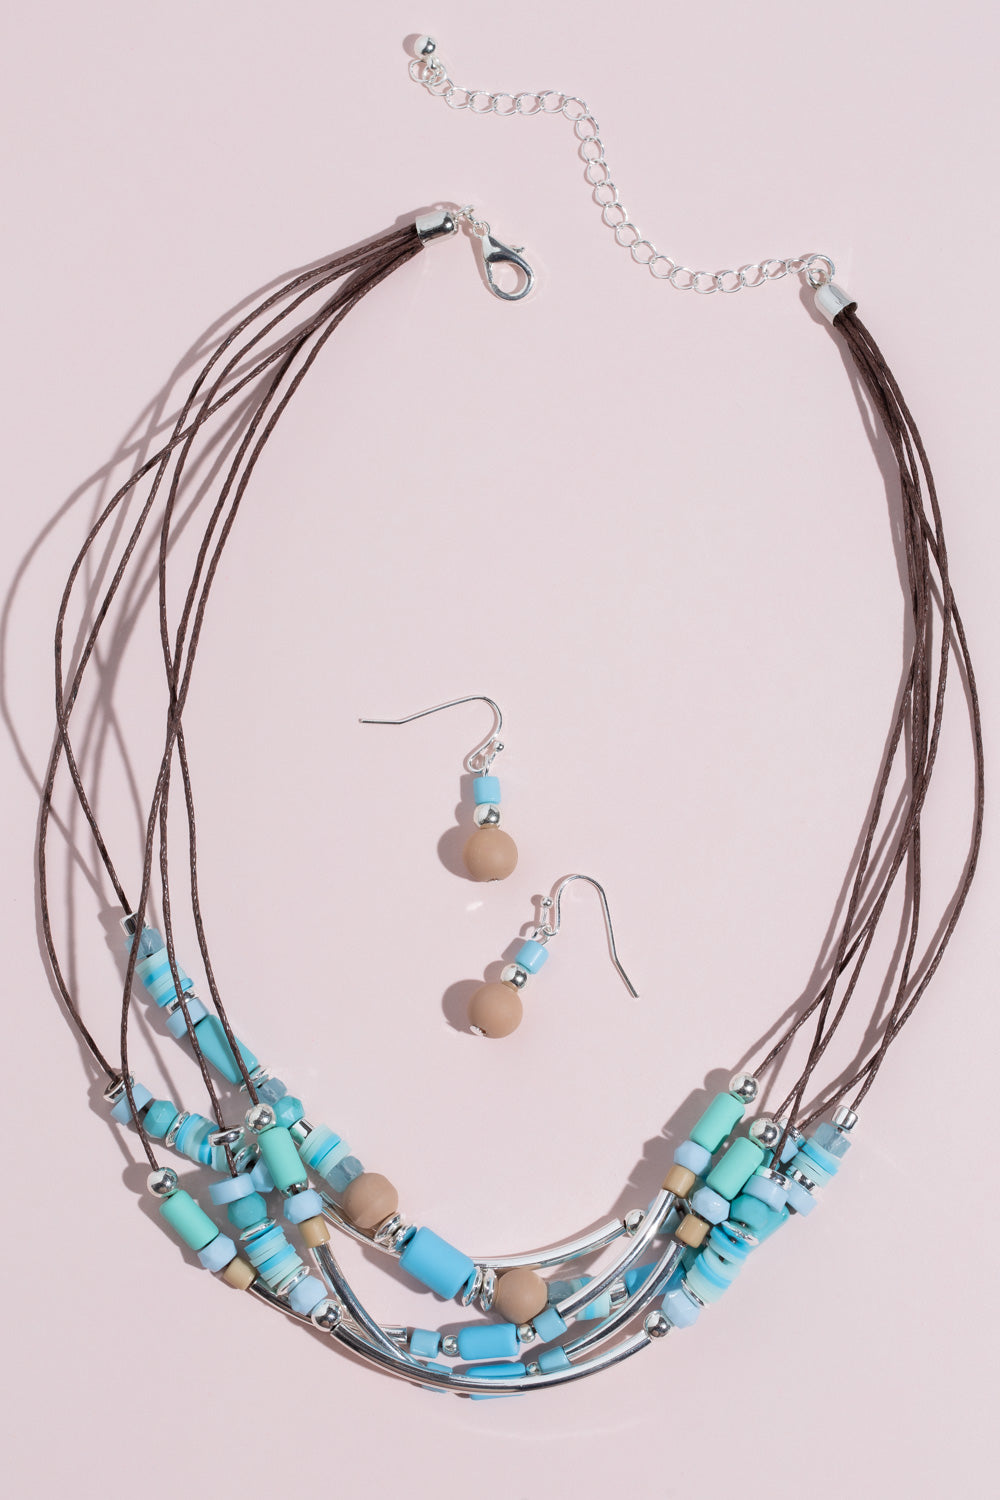 Type 2 Sea Song Necklace/Earring Set